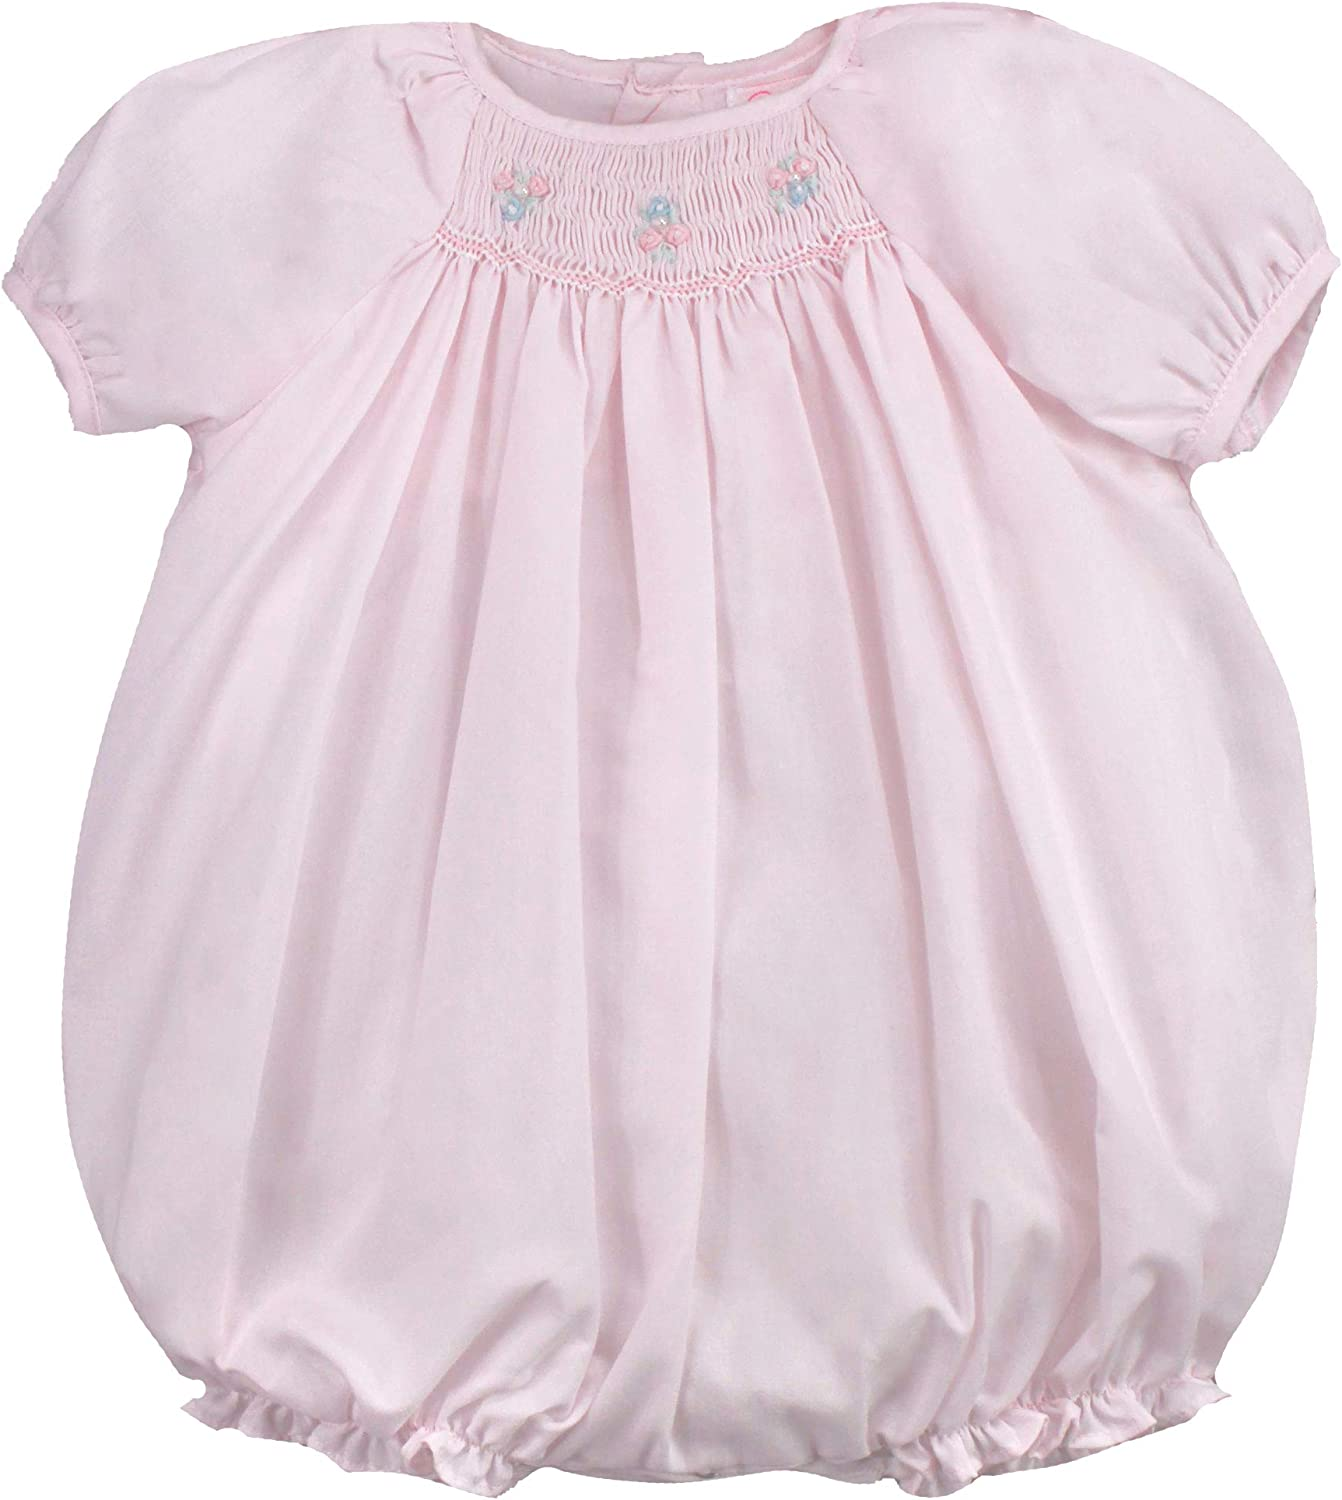 Petit Ami Baby Girls' Hand-Embroidered Smocked Bubble